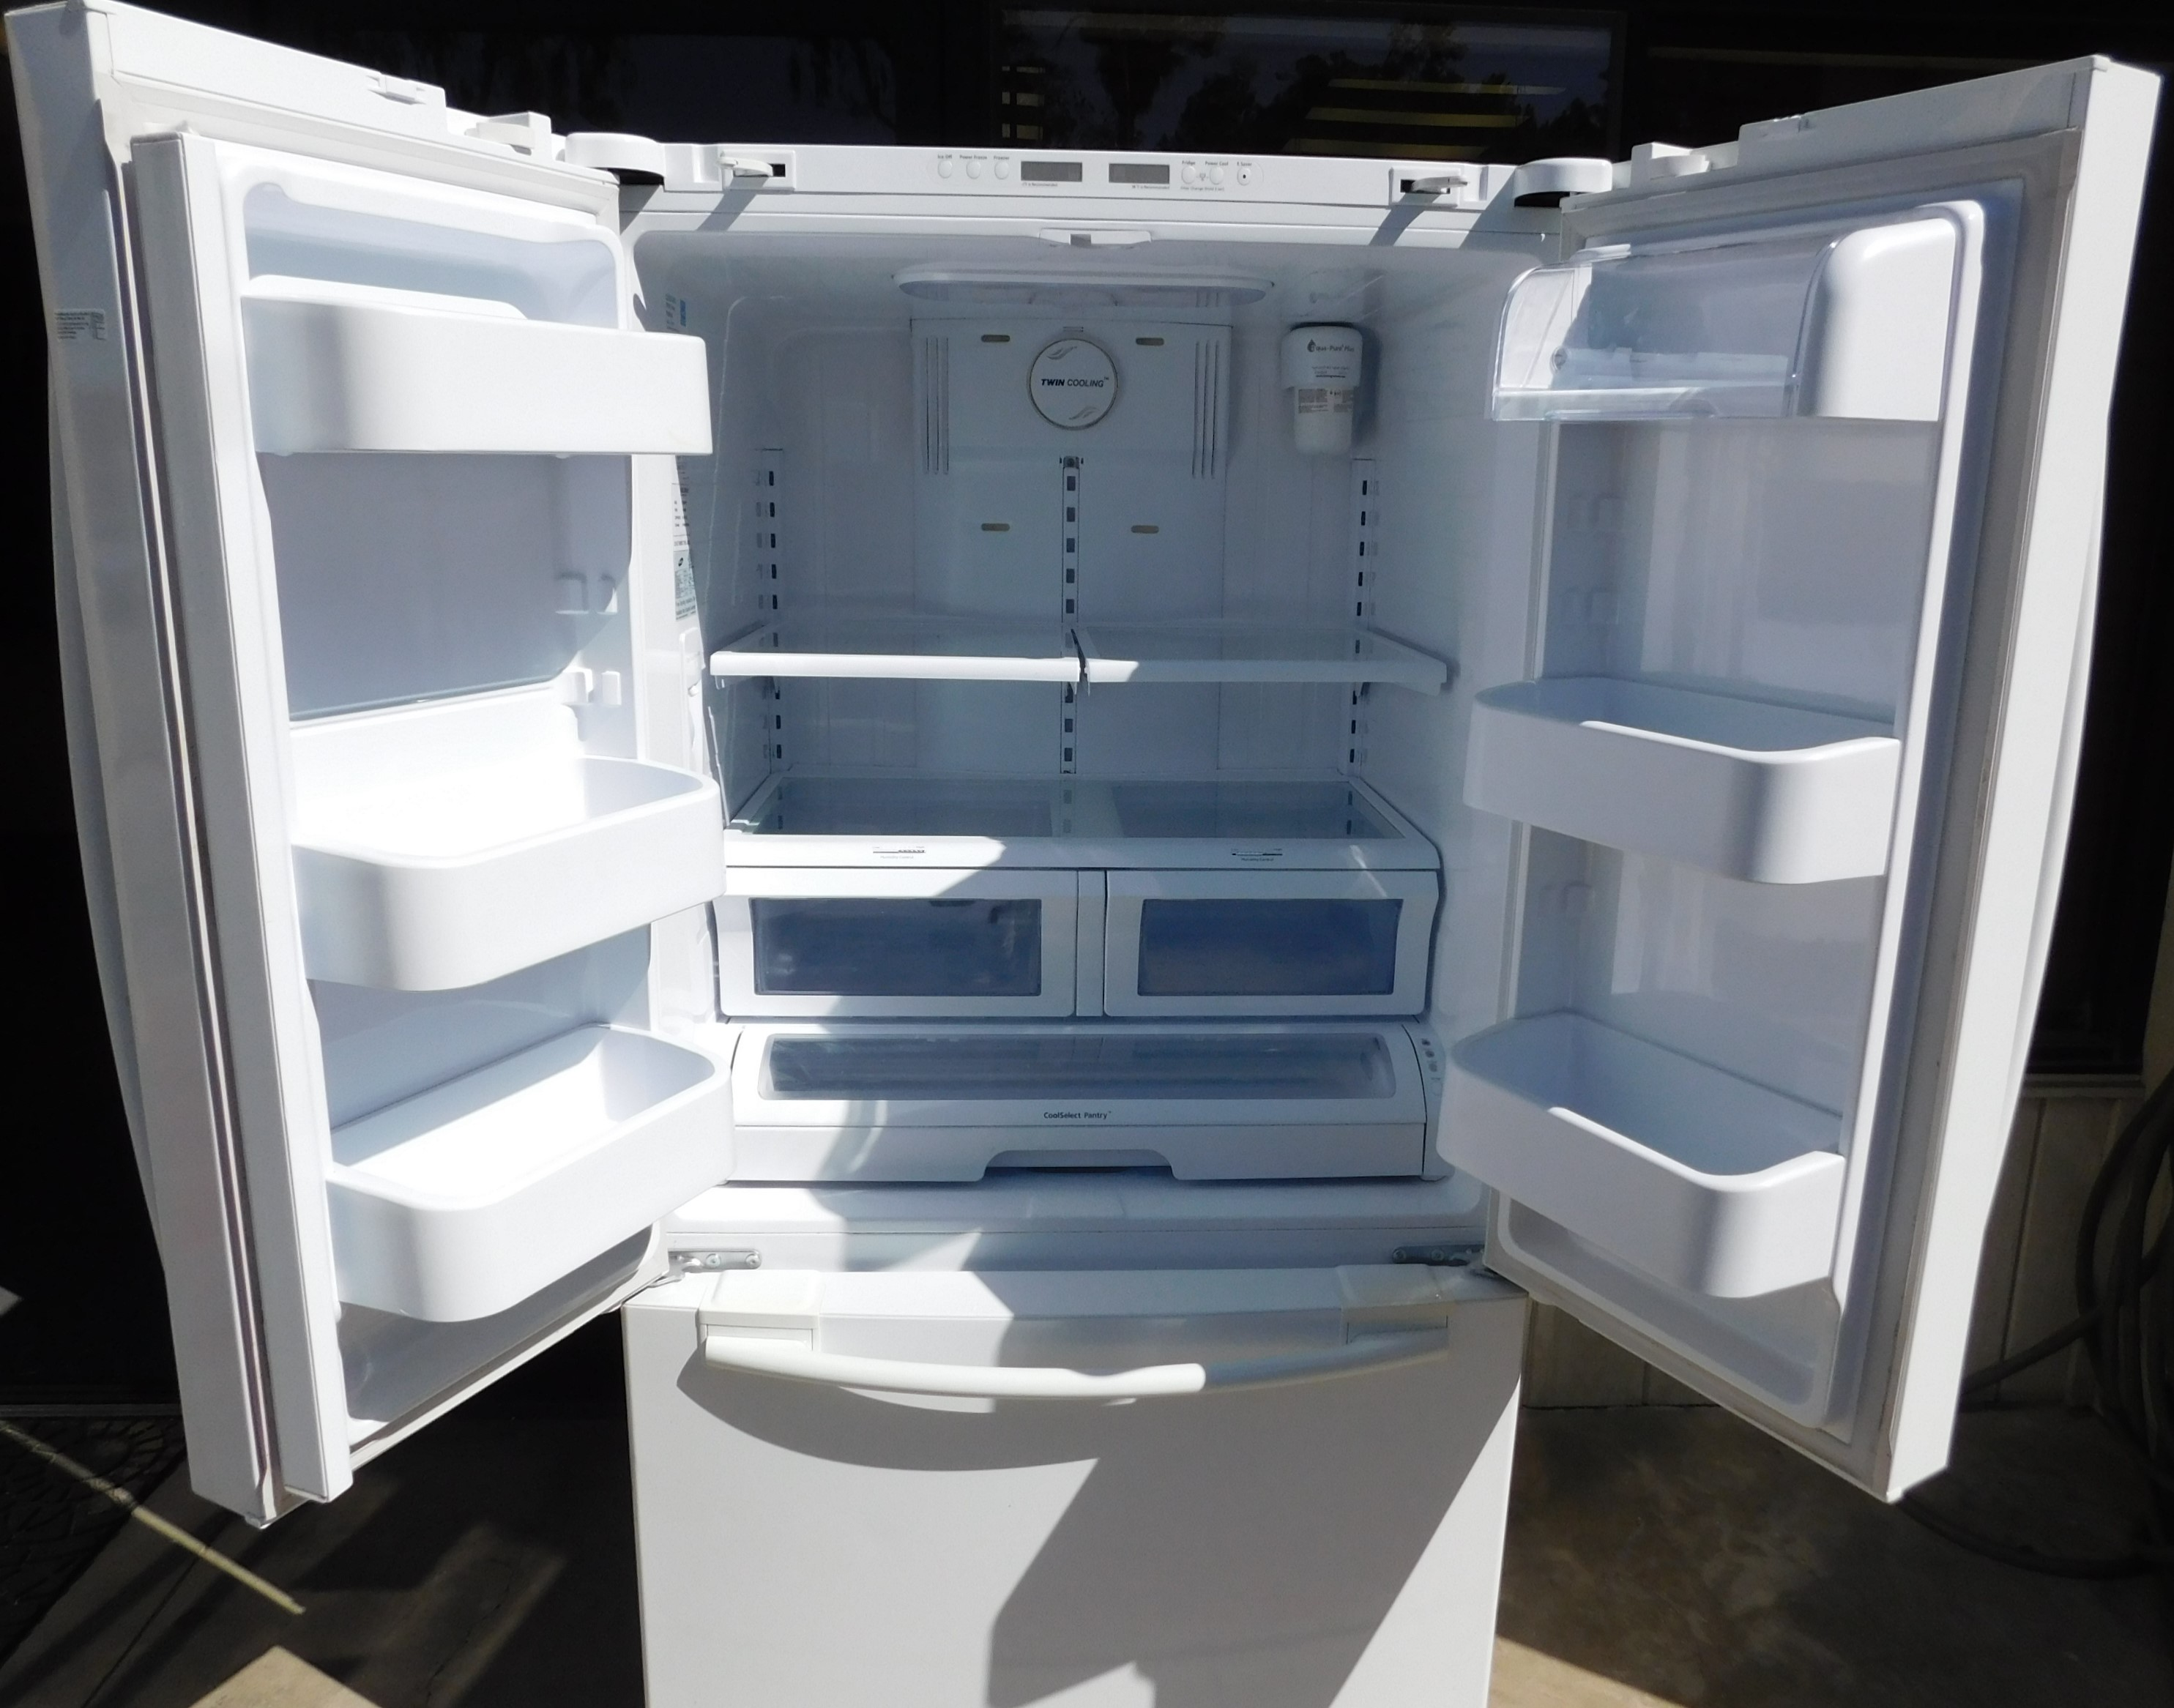 27 Cu Ft Samsung Side By Side Refrigerator With Bottom